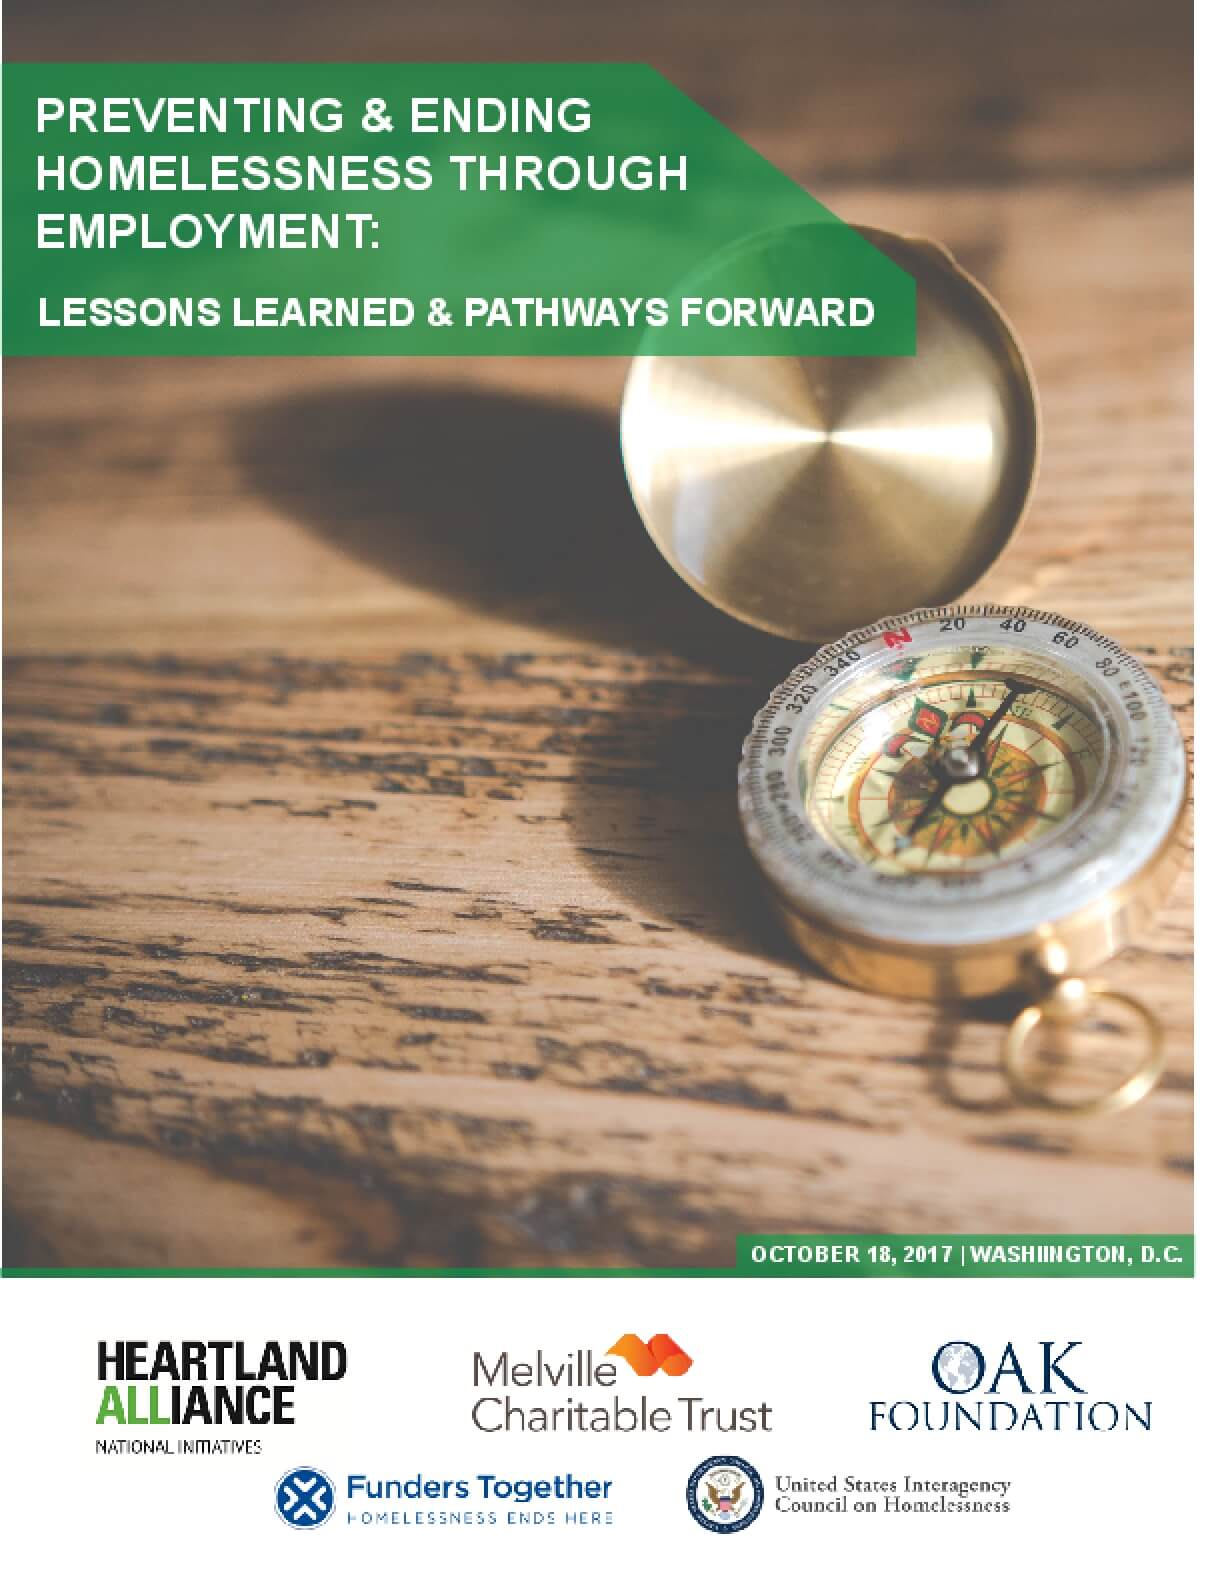 Preventing & Ending Homelessness Through Employment: Lessons Learned & Pathways Forward - 2017 National Summit